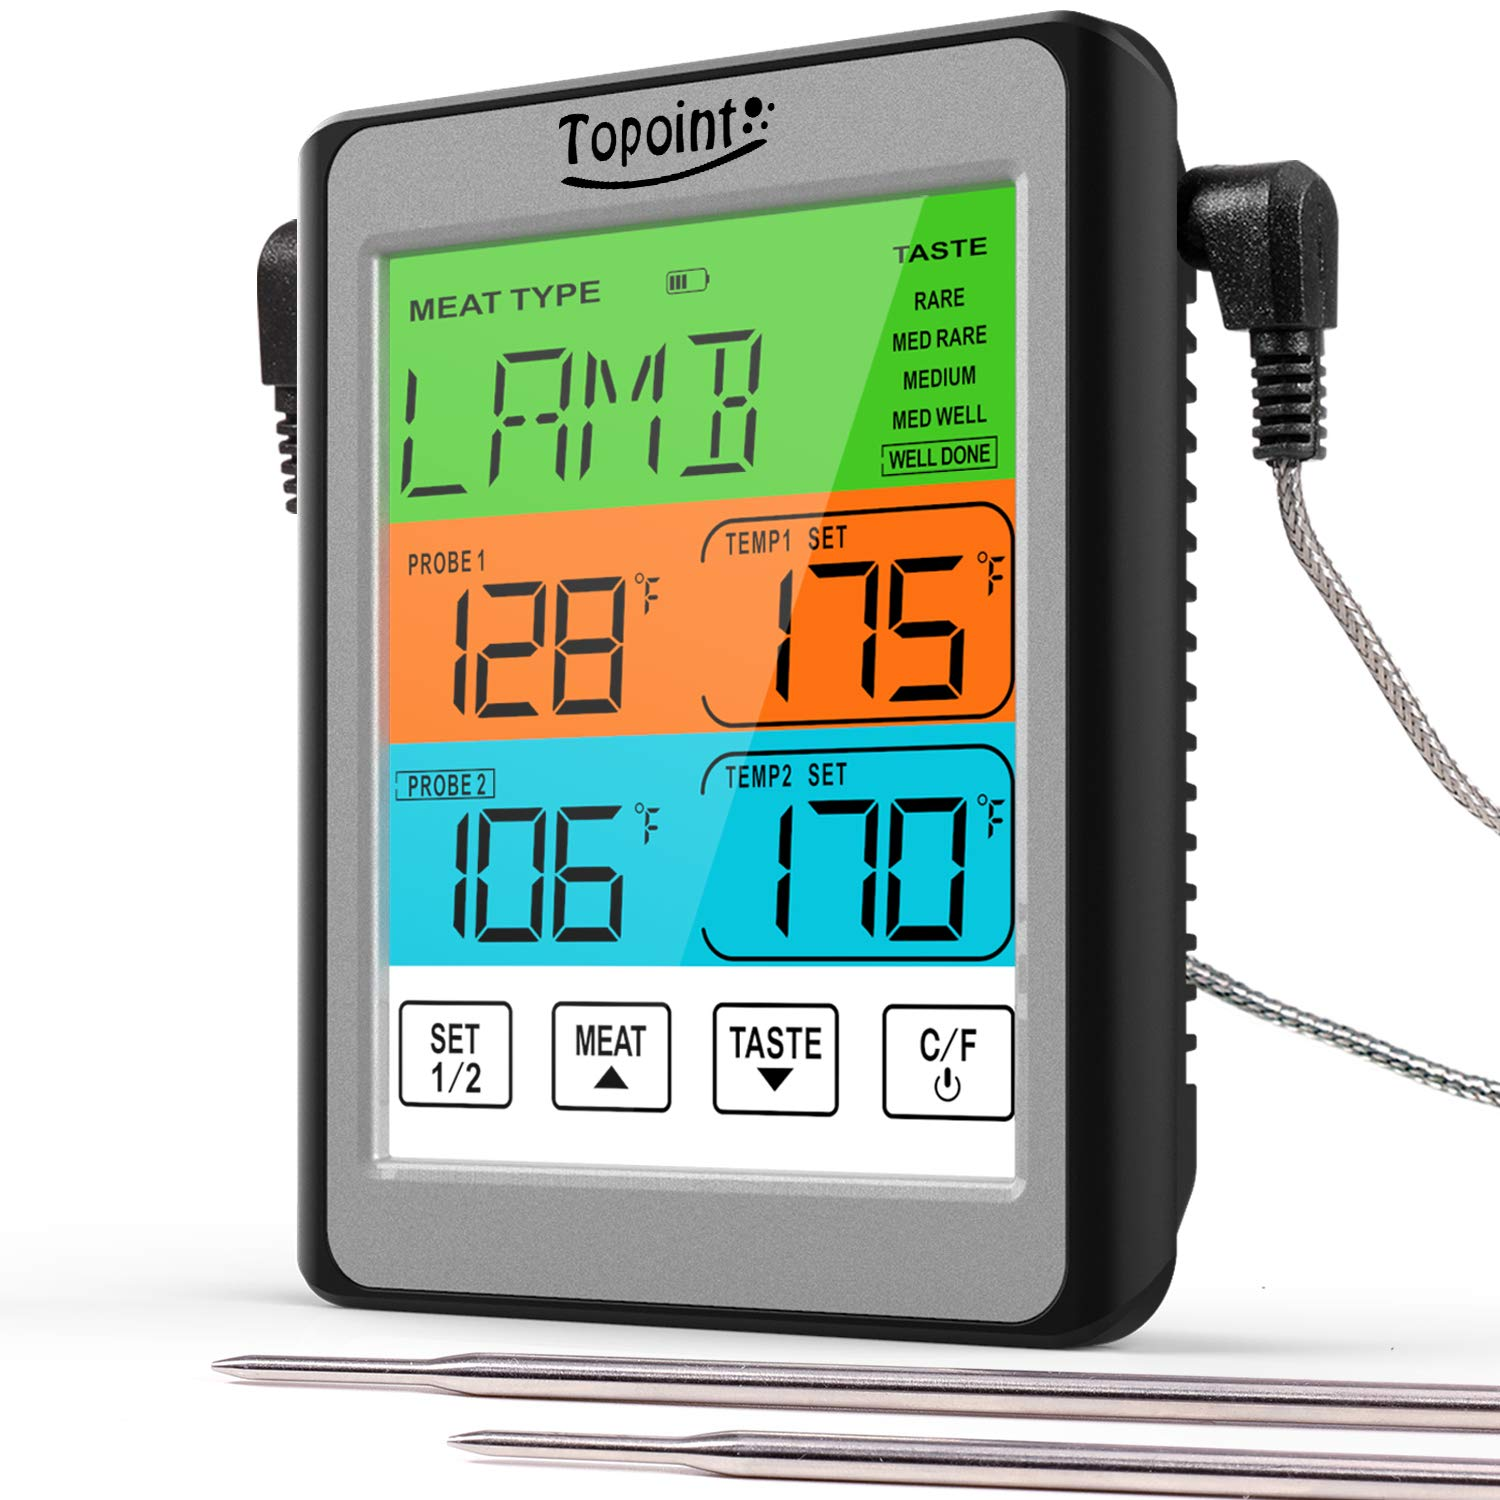 Dual Probe Digital Meat Thermometer,TOPOINT Touchscreen Food Thermometer for Food Cooking Kitchen Oven Smoker BBQ Grill